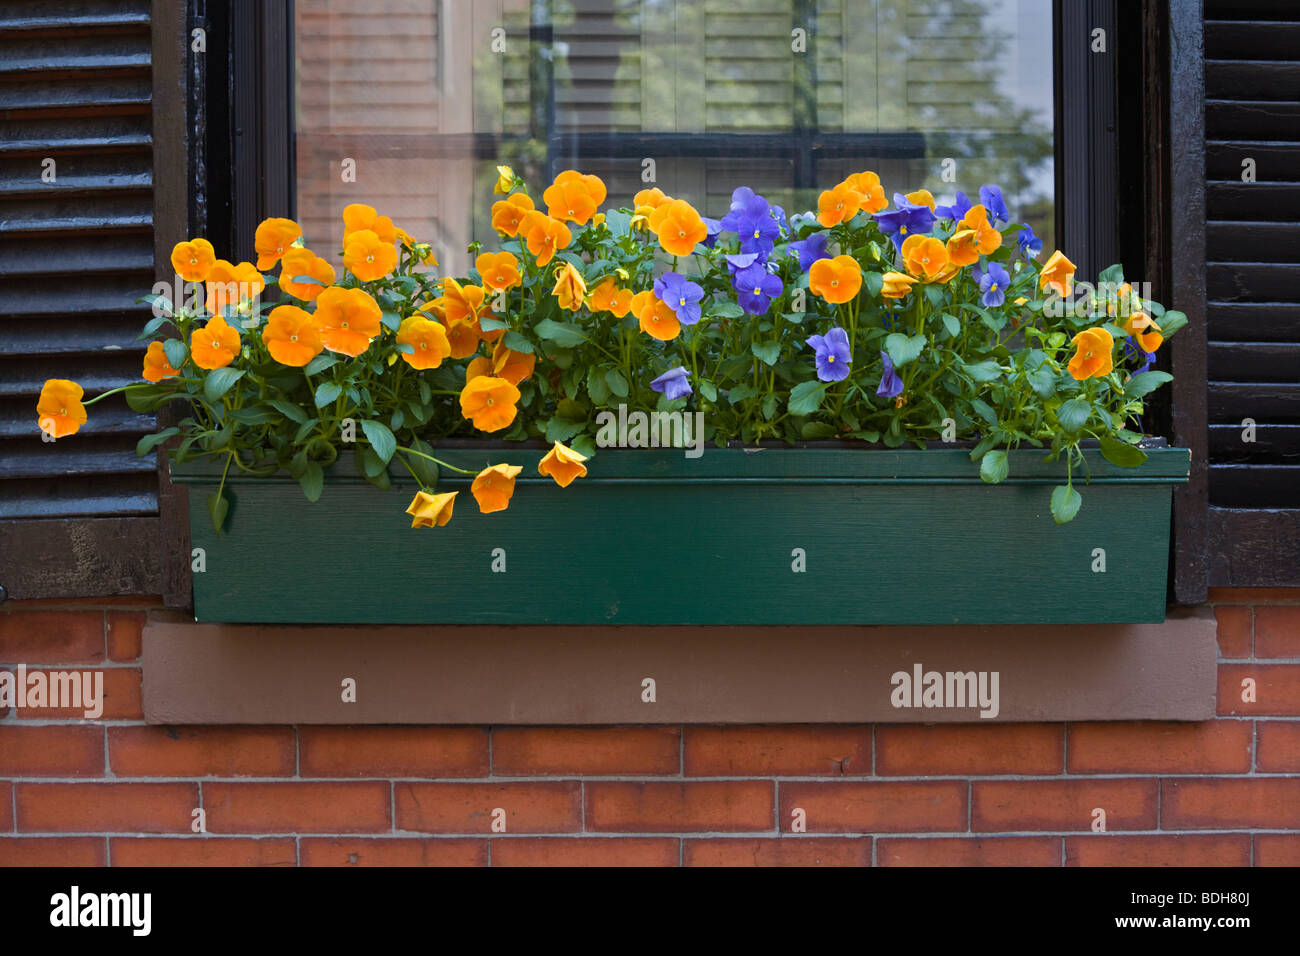 PANSIES in a WINDOW BOX of a classic BRICK HOUSE on BEACON HILL - BOSTON, MASSACHUSETTS - Stock Image